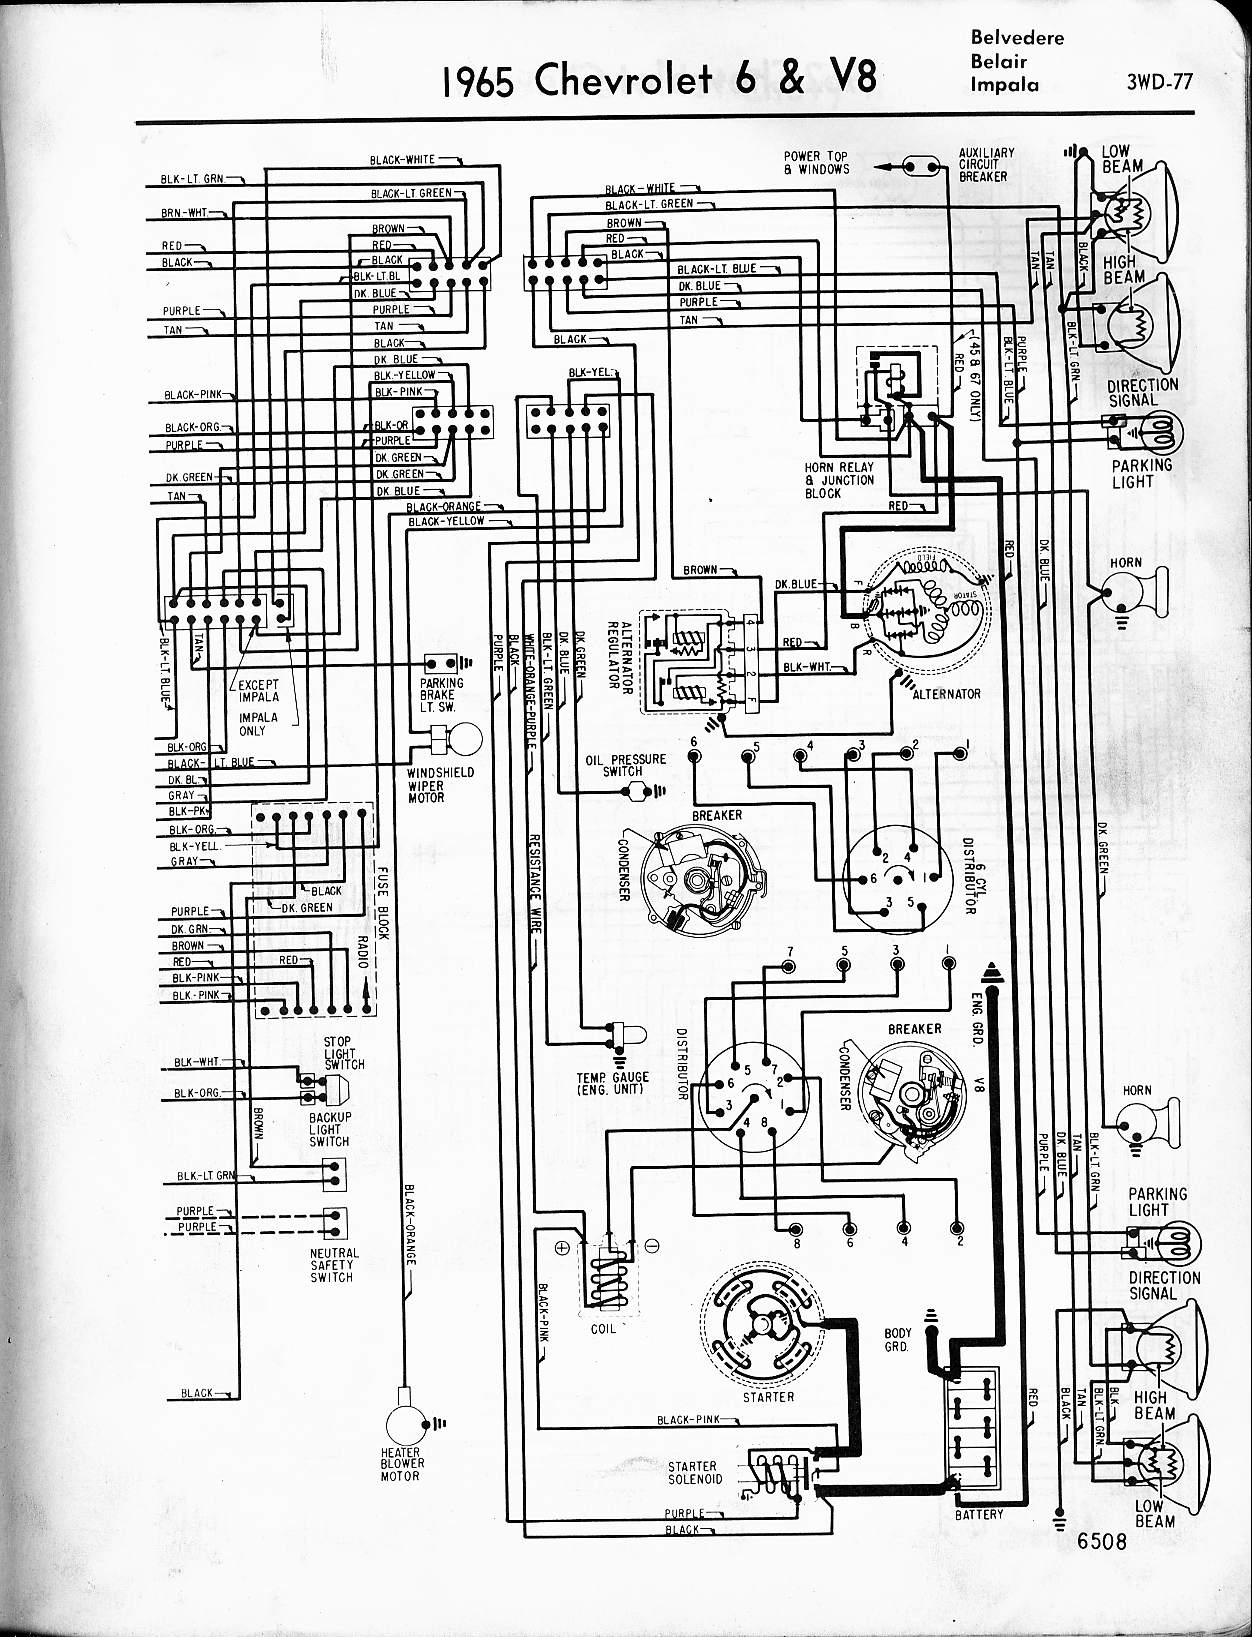 chevy diagrams 1970 camaro wiring schematic 1965 impalla wiring diagram  figure a figure b